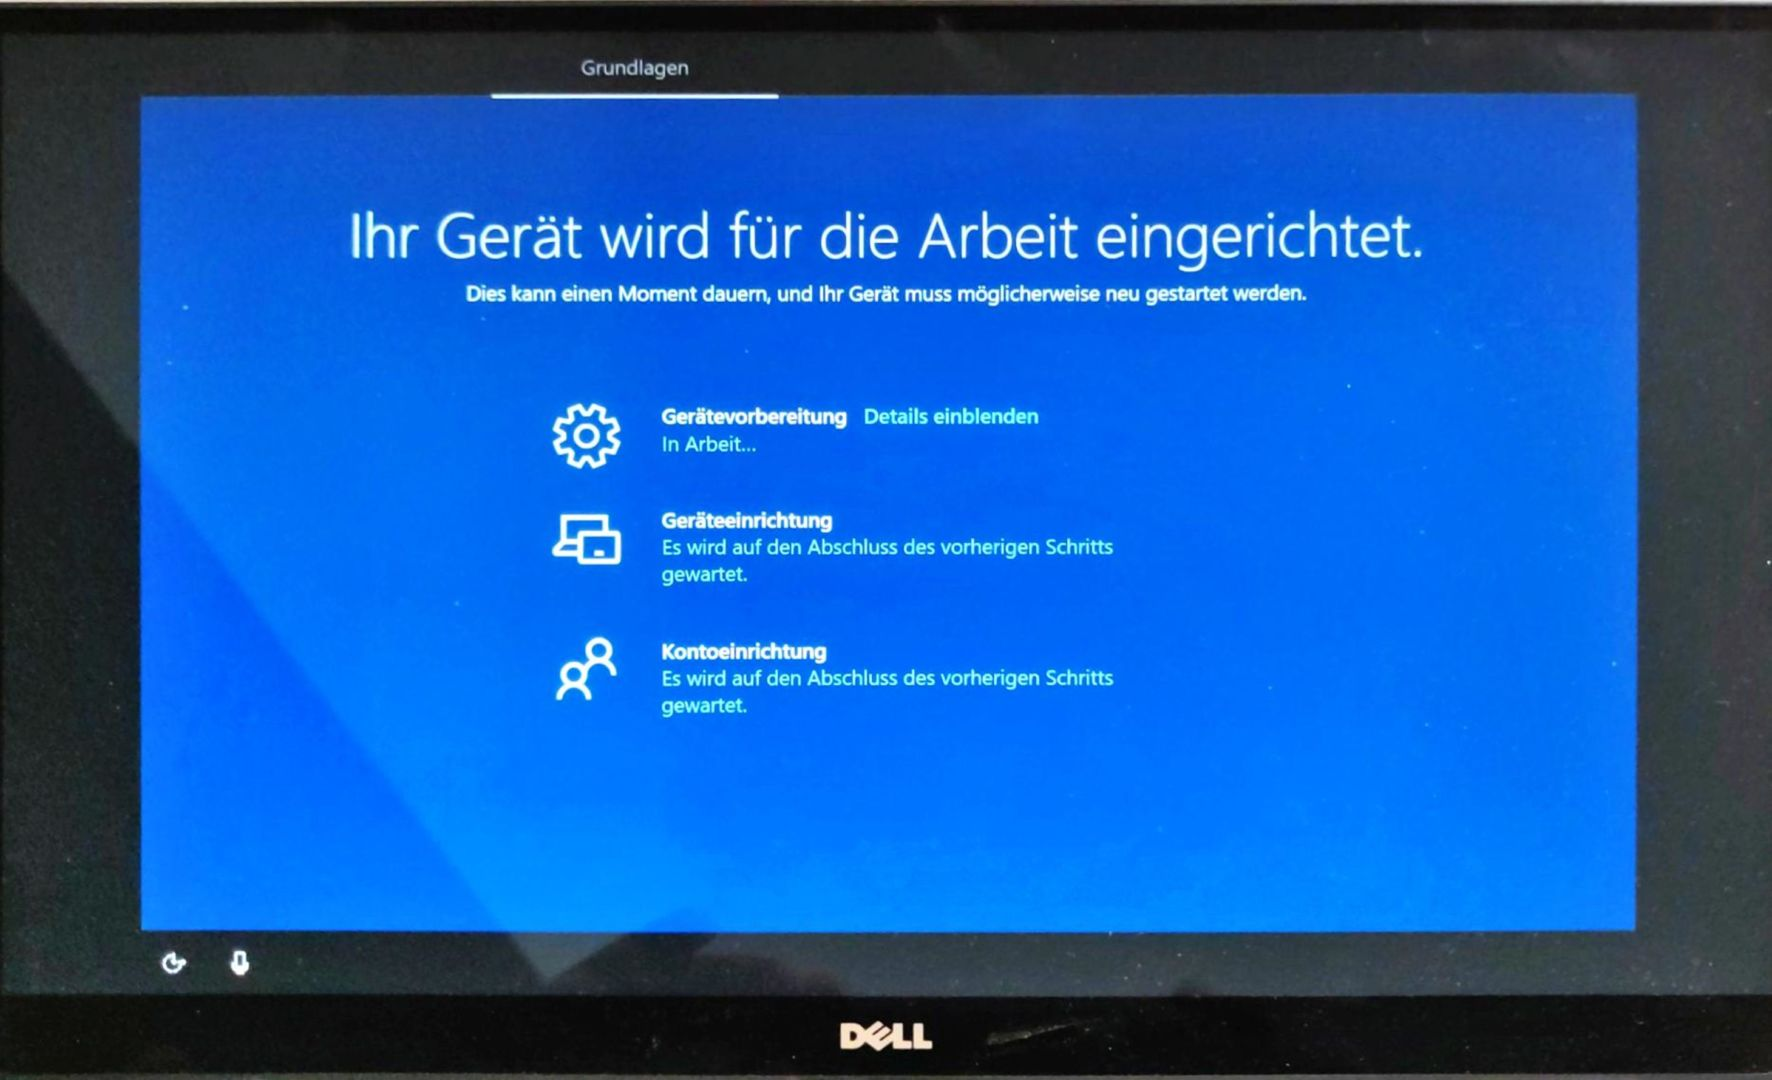 062519 0830 NeuesbeiAut8 New for Autopilot with Windows 10 1903 (Updated) 15